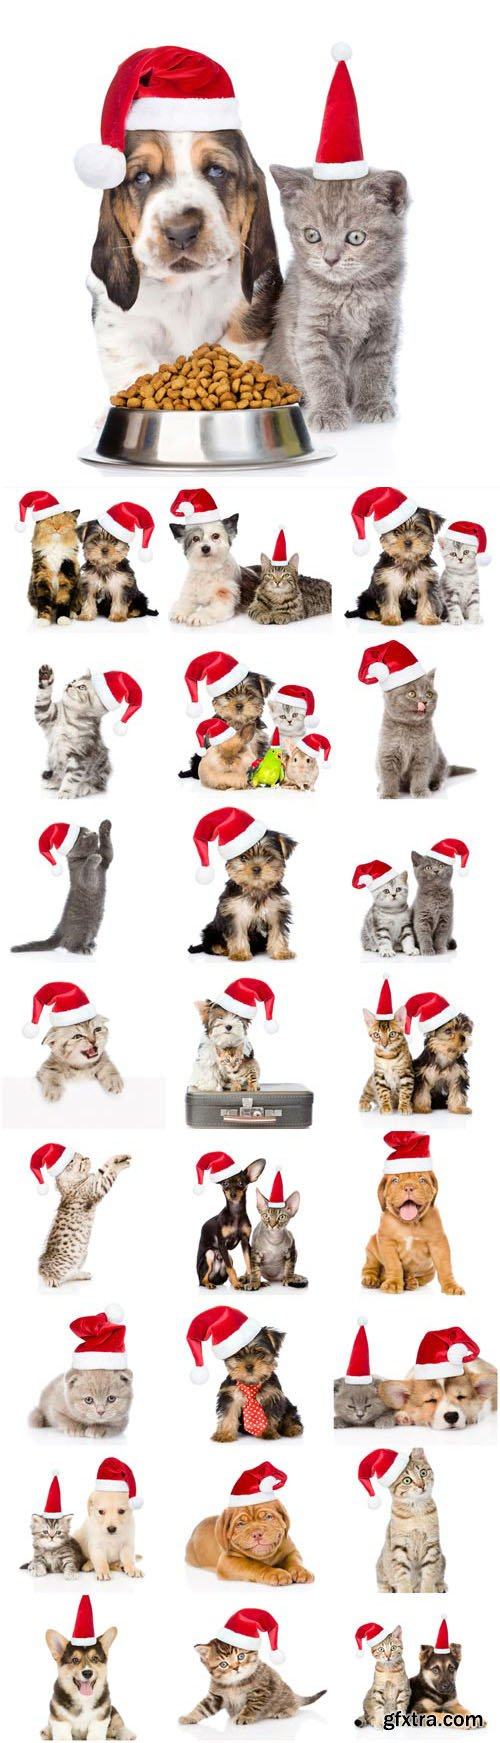 New Year and Christmas stock photos №52